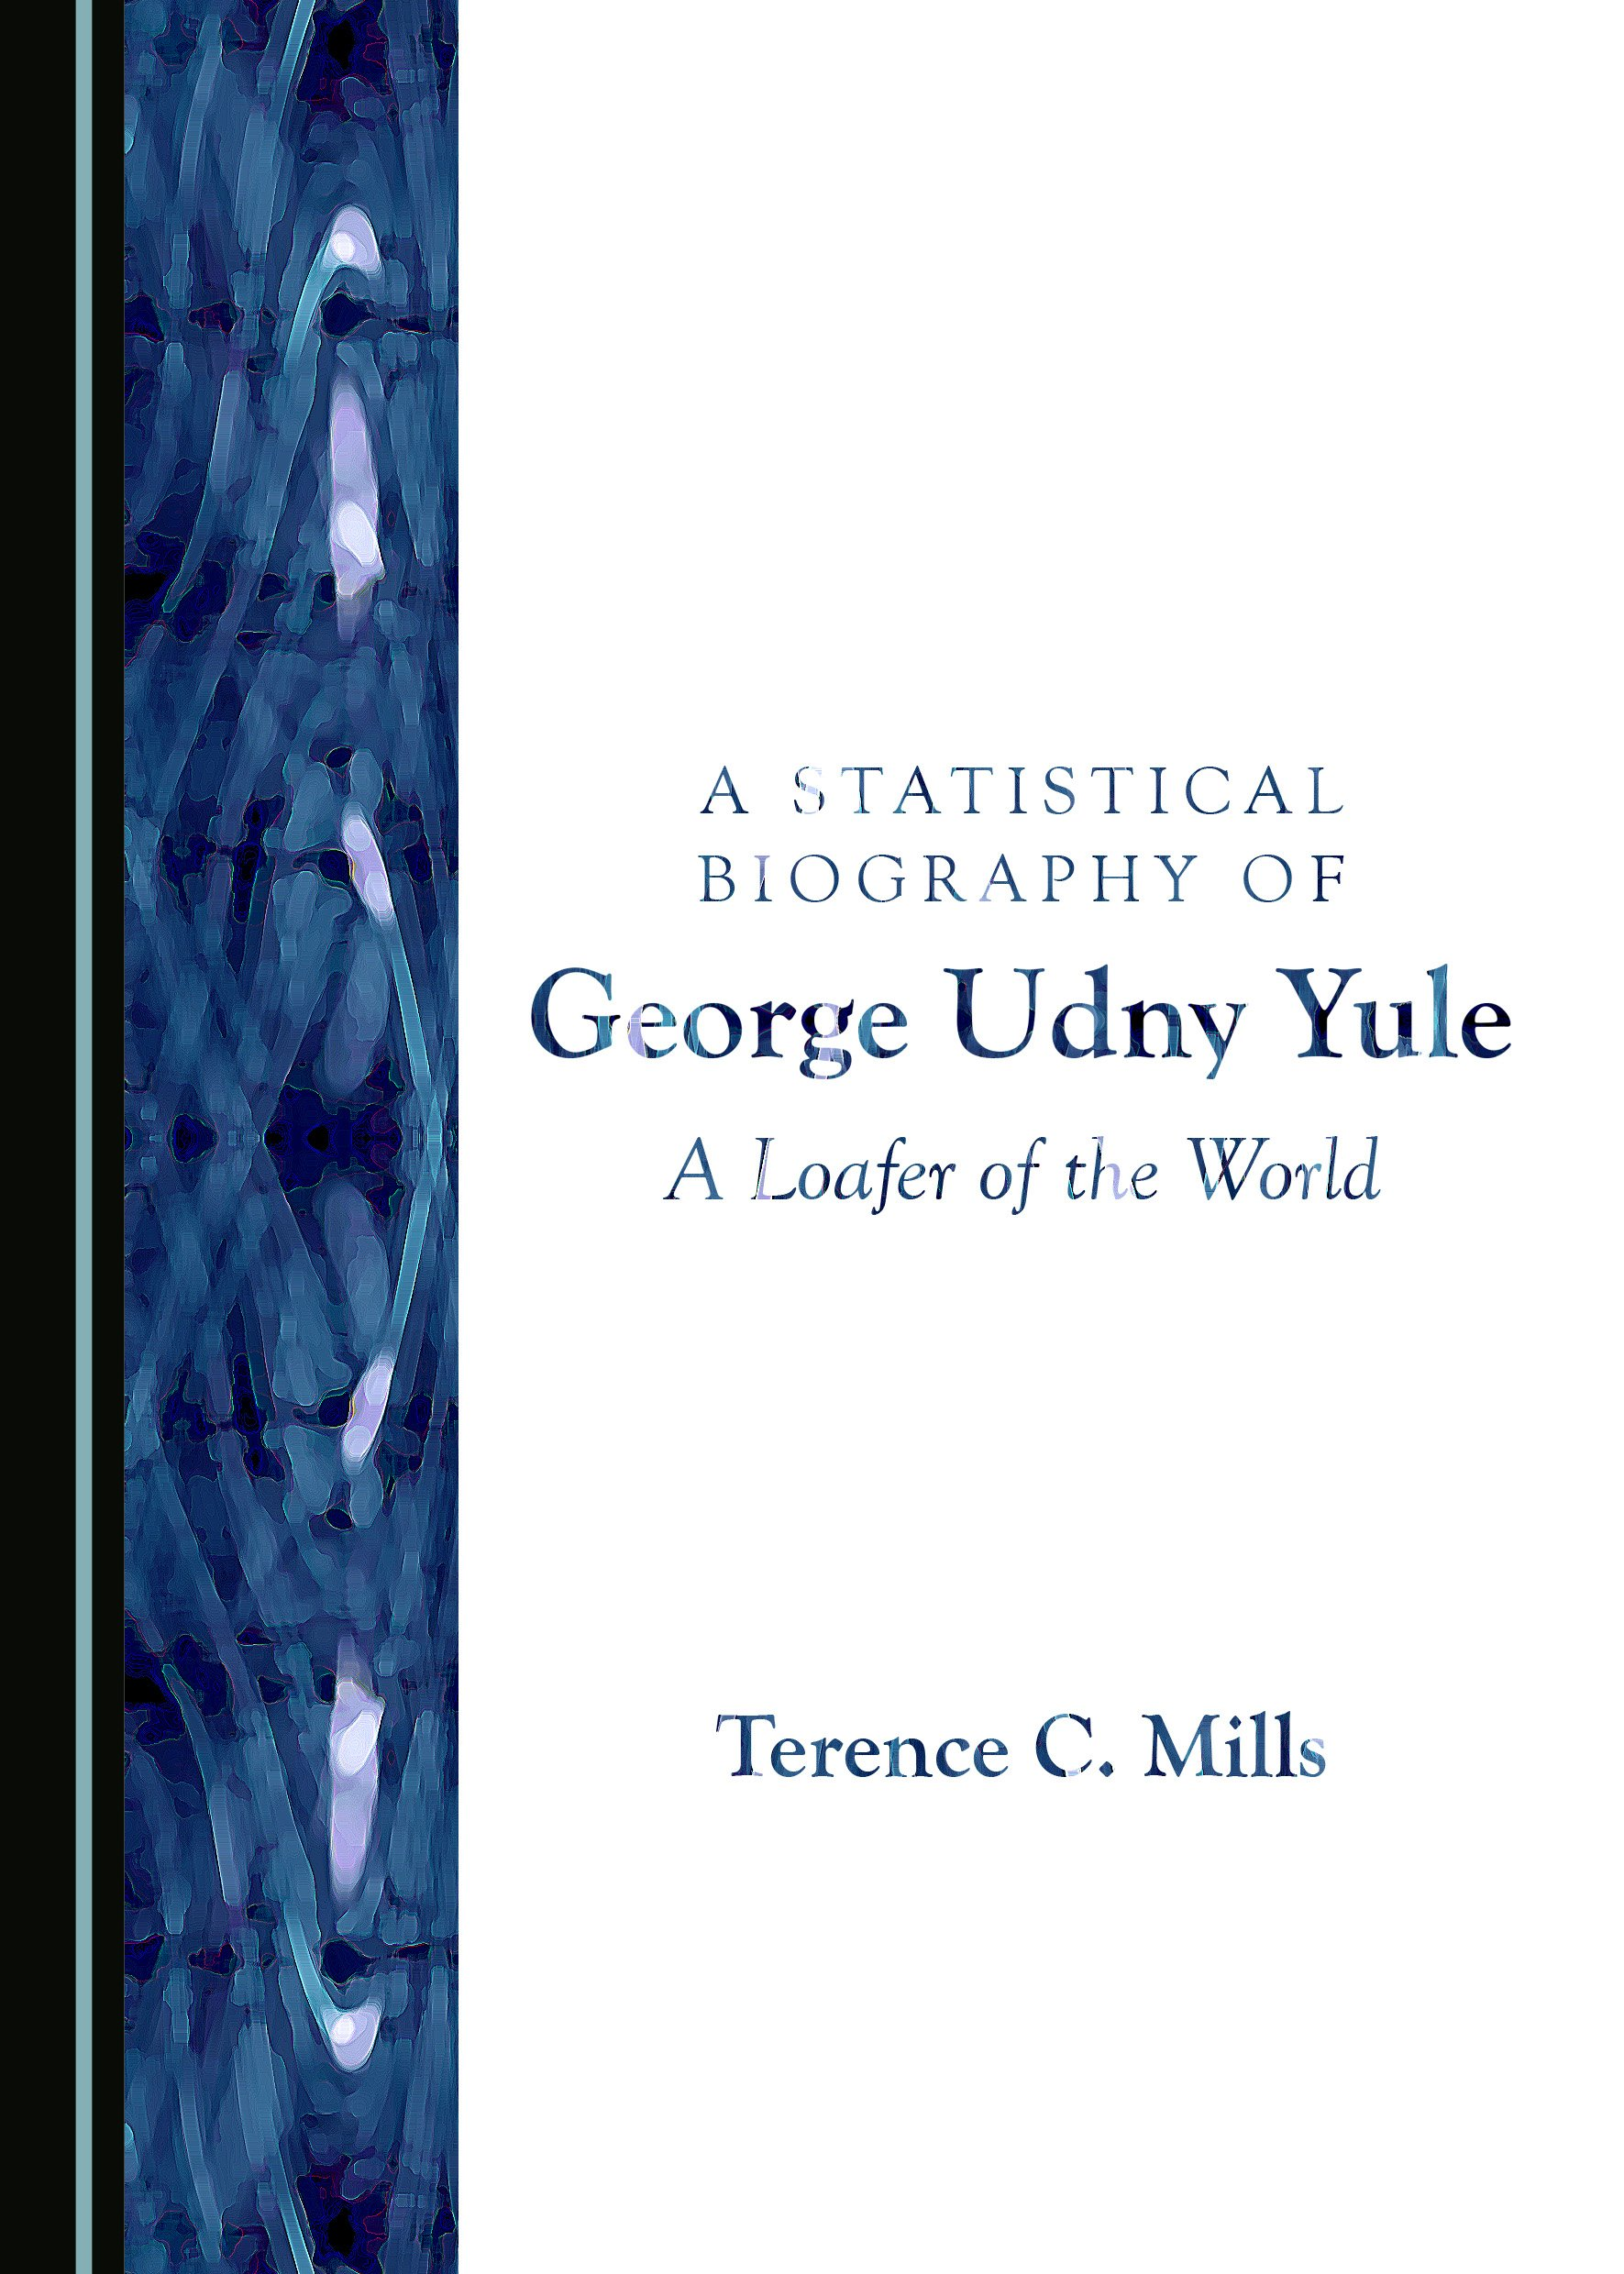 A Statistical Biography of George Udny Yule: A Loafer of the World